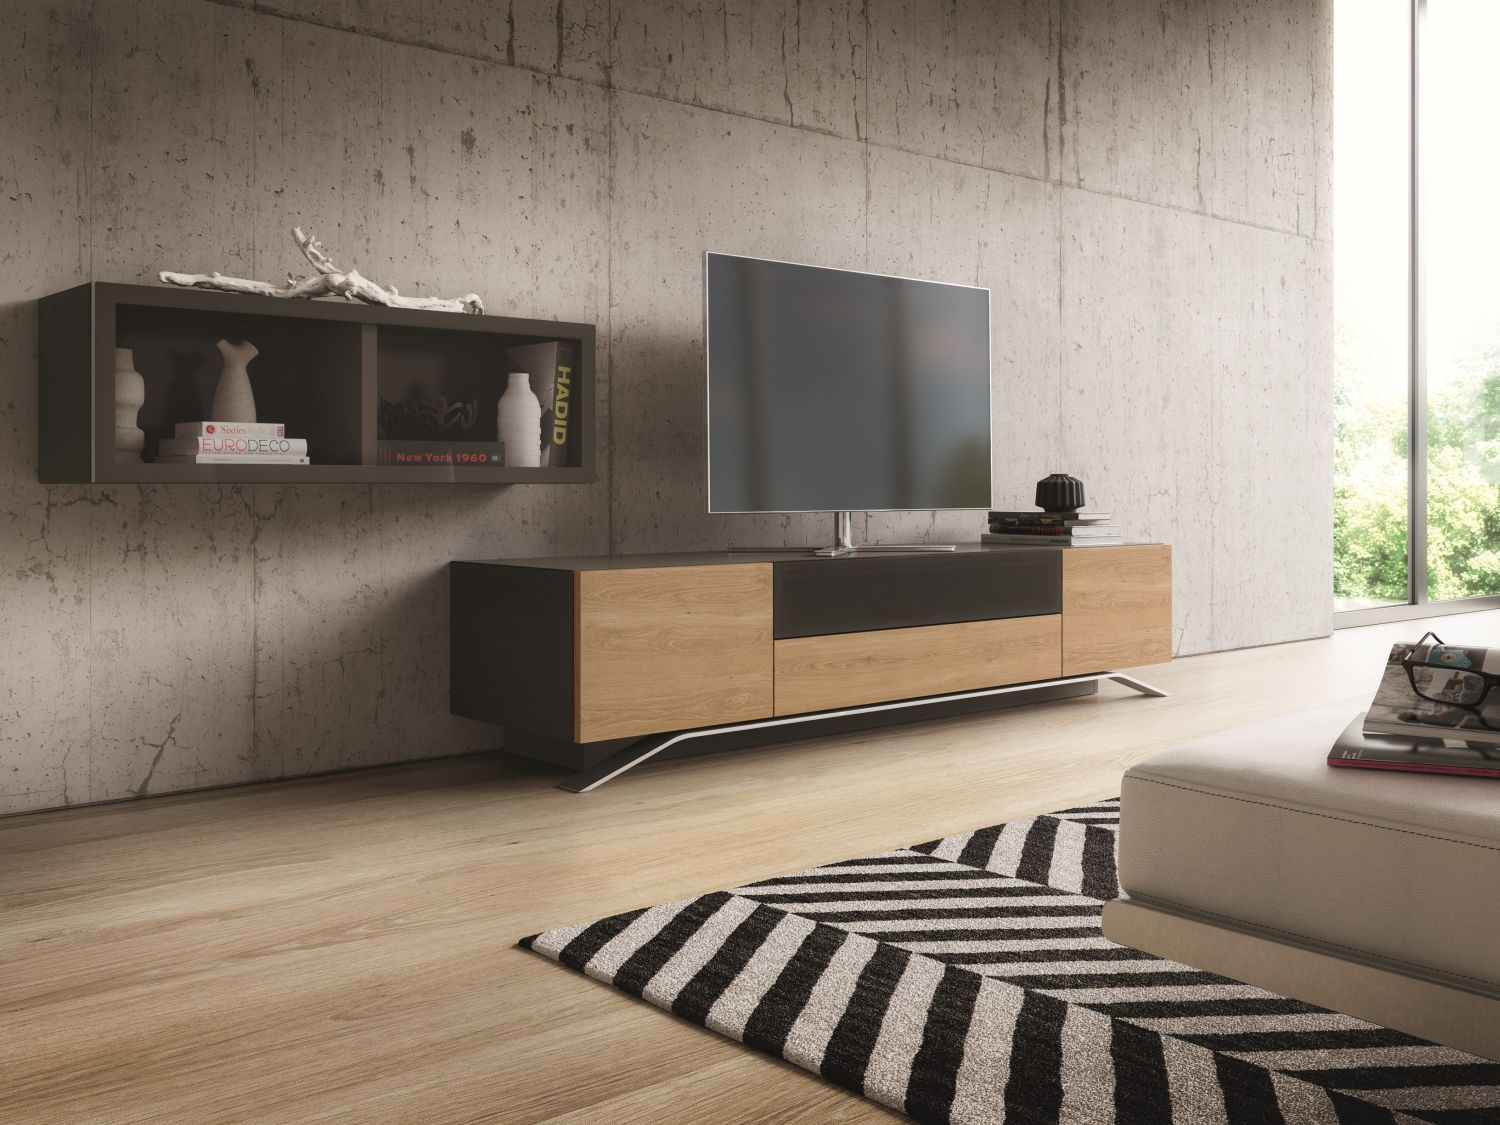 Boconcept Console Modern Media Console Designs Showcasing This Style S Best Features